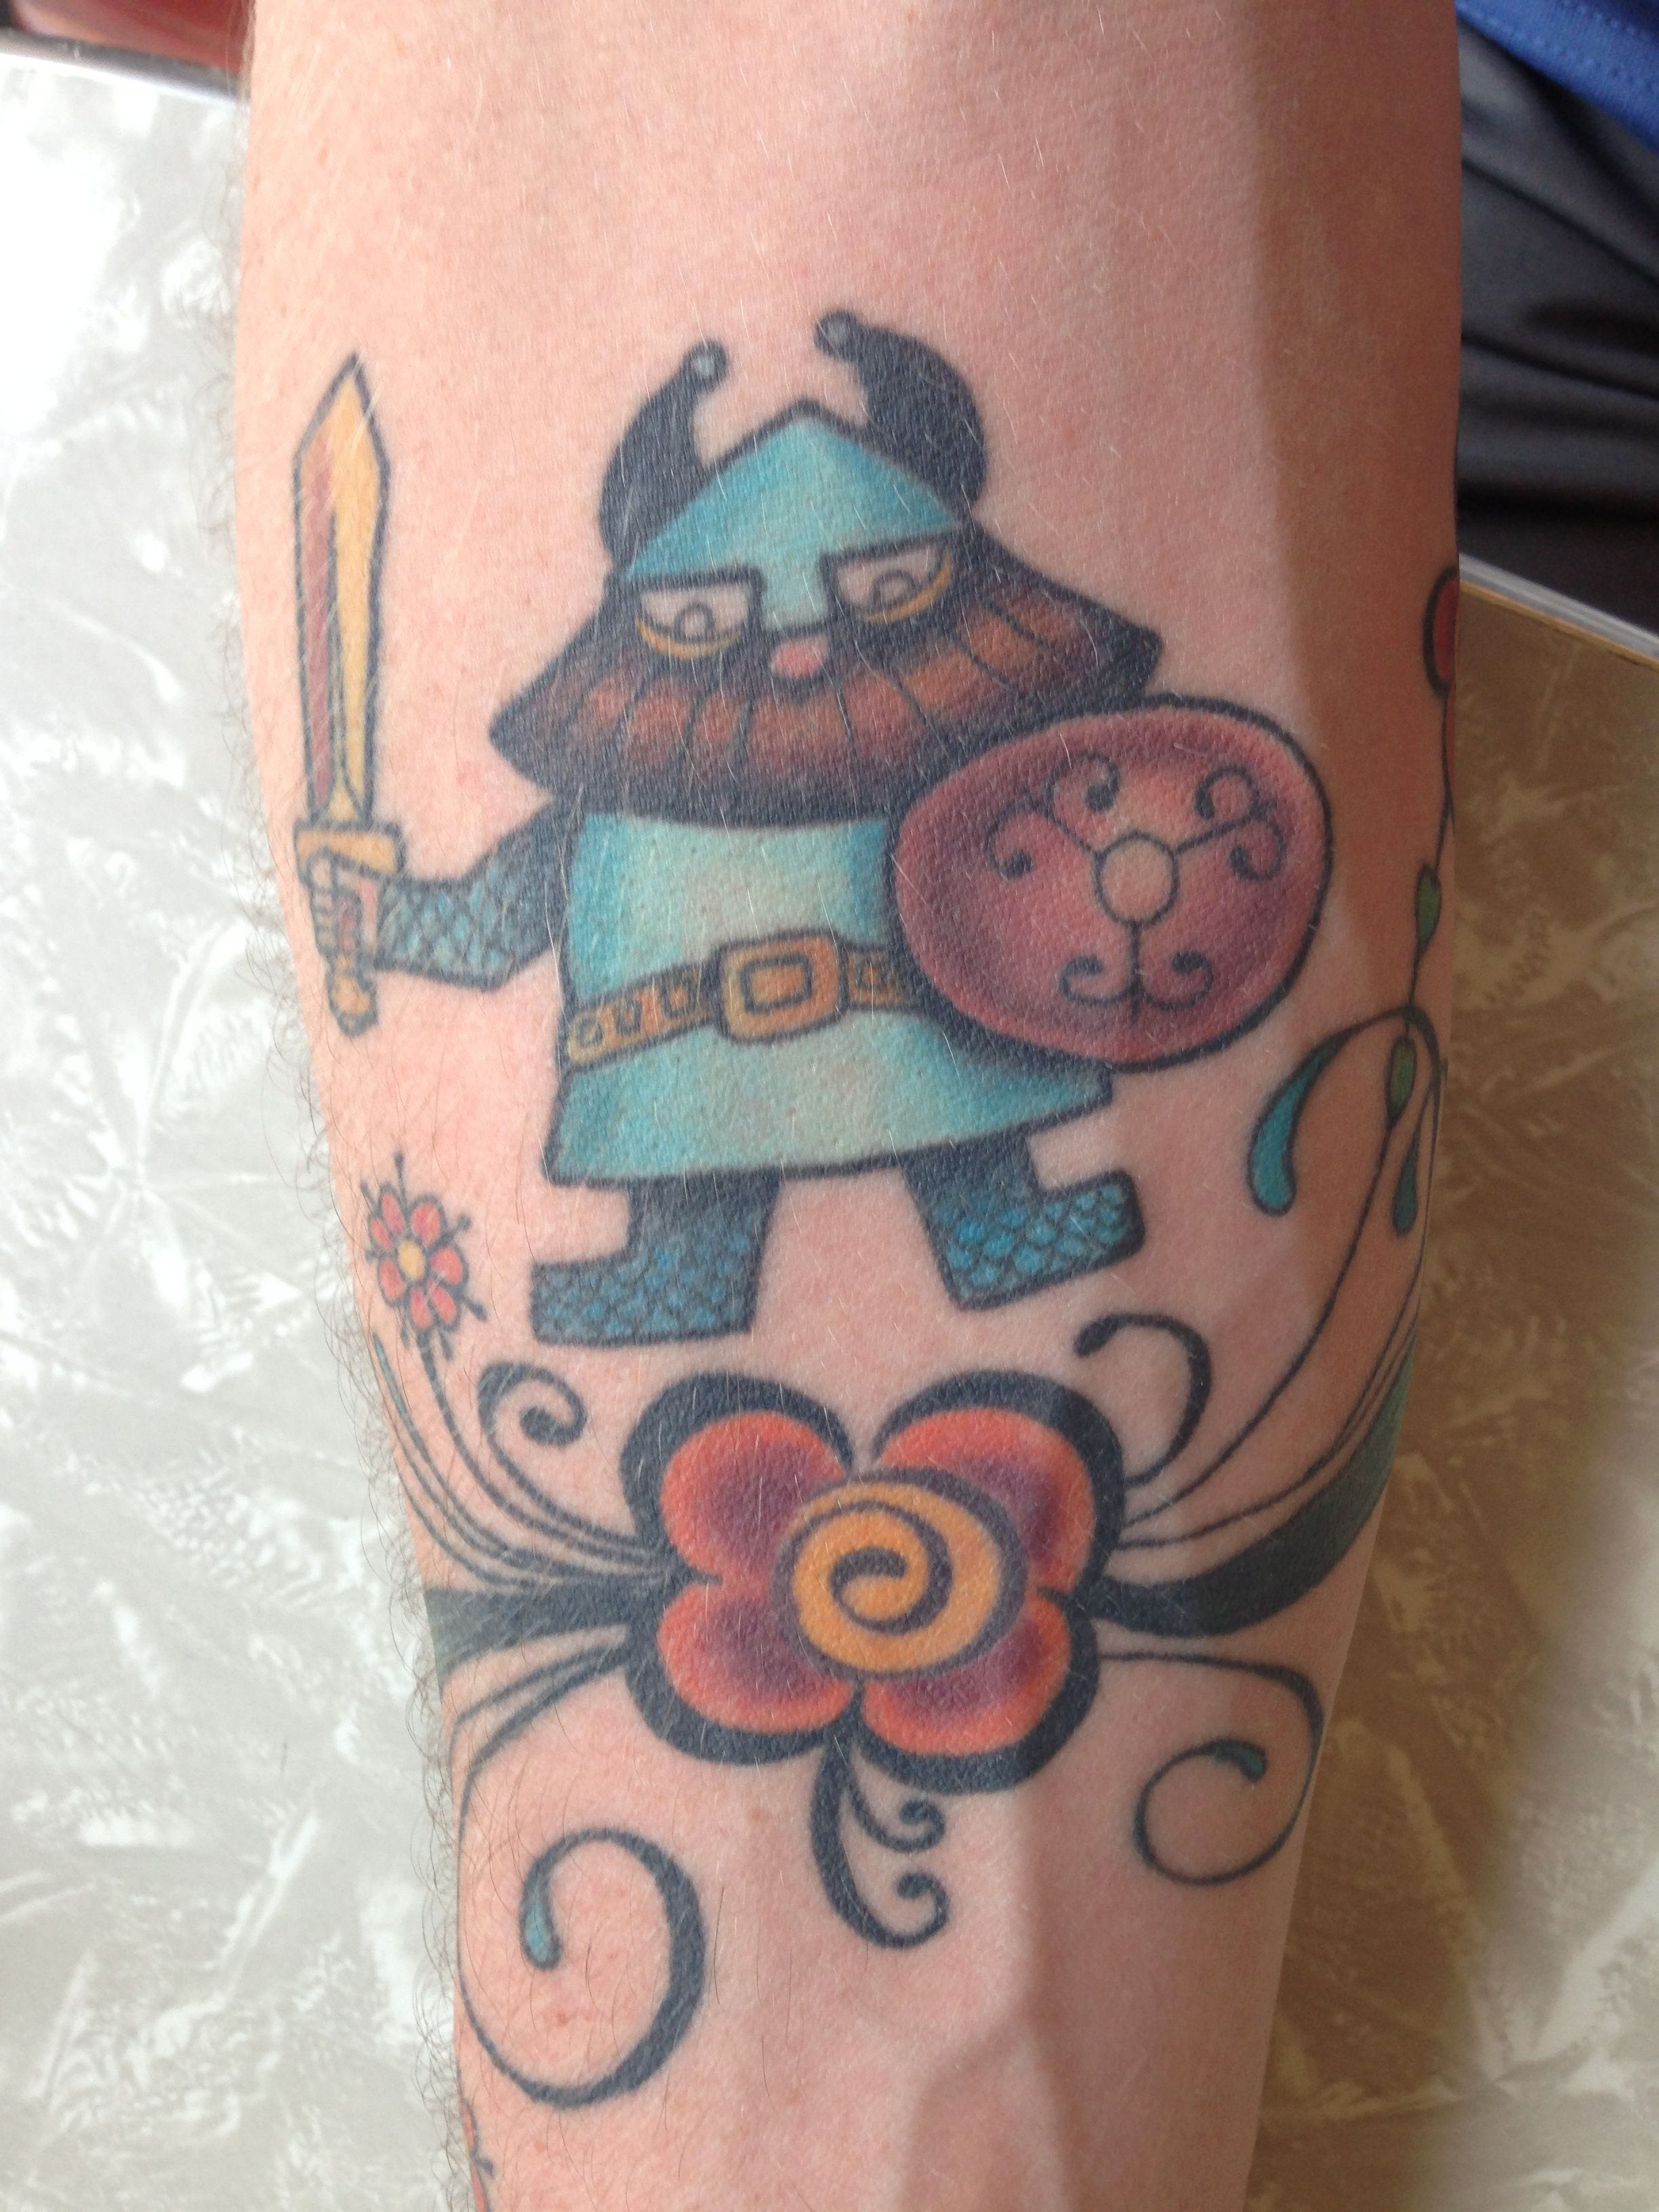 Adorable Viking tattoo with rosemaling. Could be cute w/a